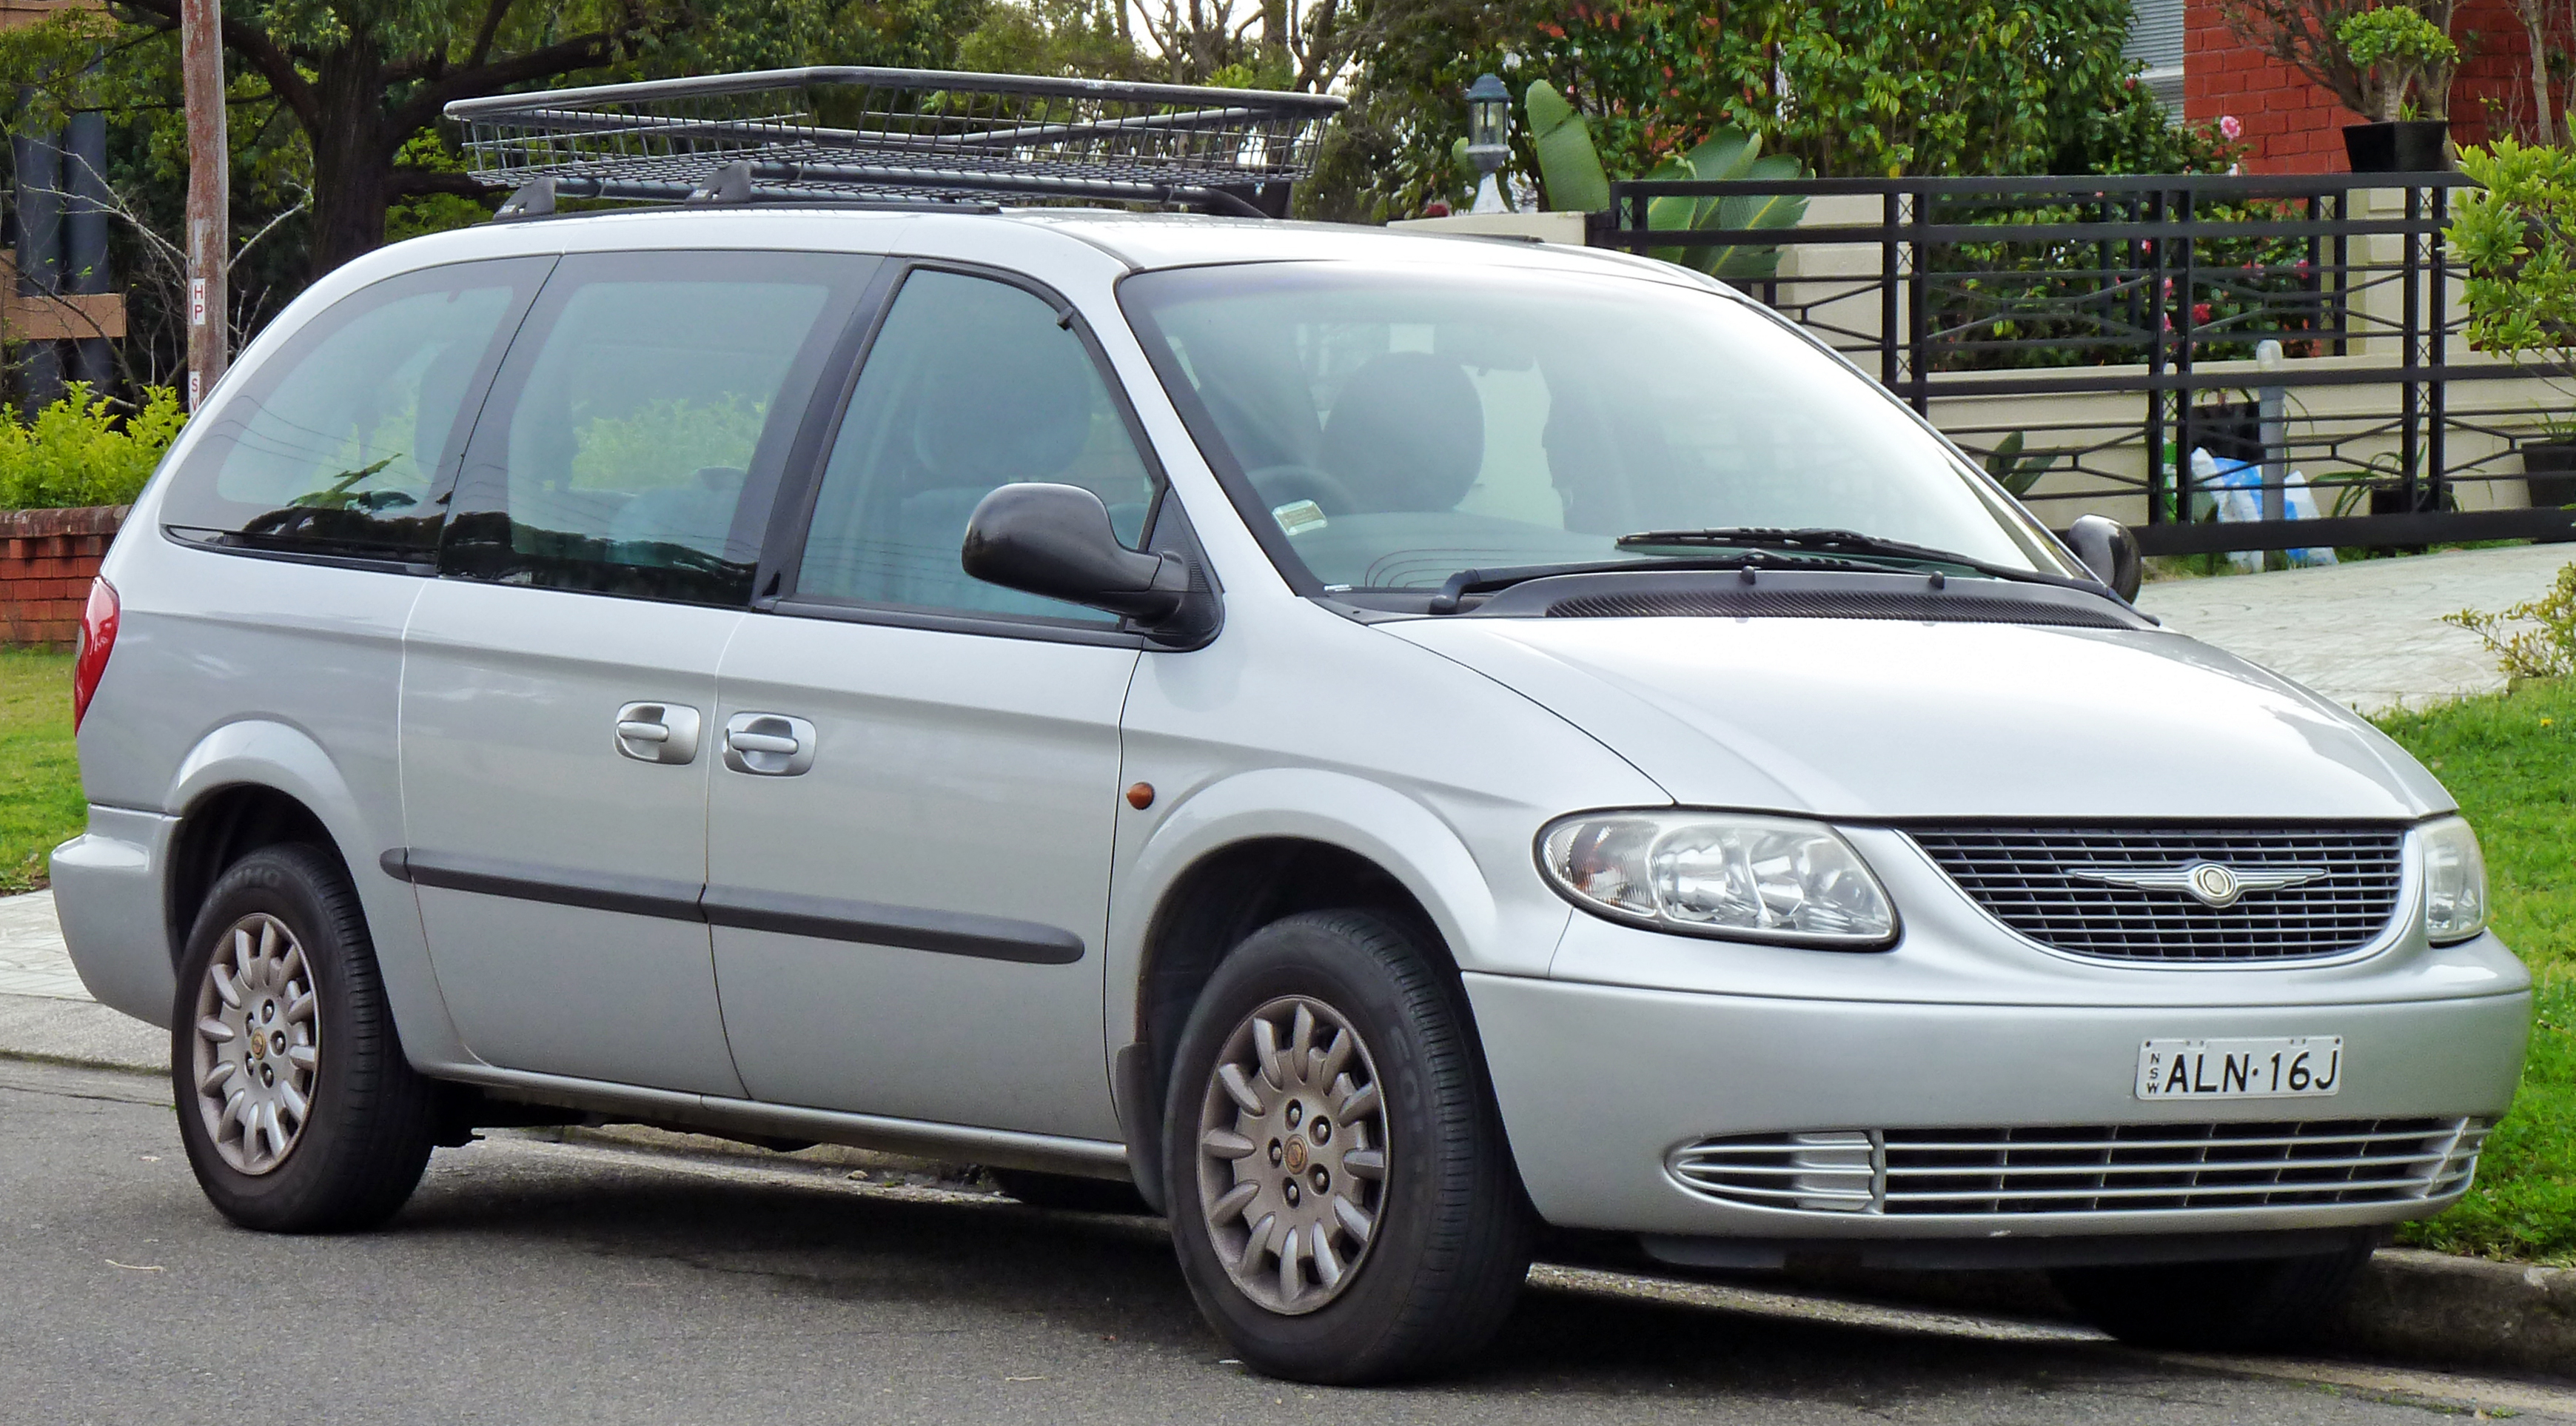 datei 2002 chrysler grand voyager gk se van 2010 07 30 jpg wikipedia. Black Bedroom Furniture Sets. Home Design Ideas